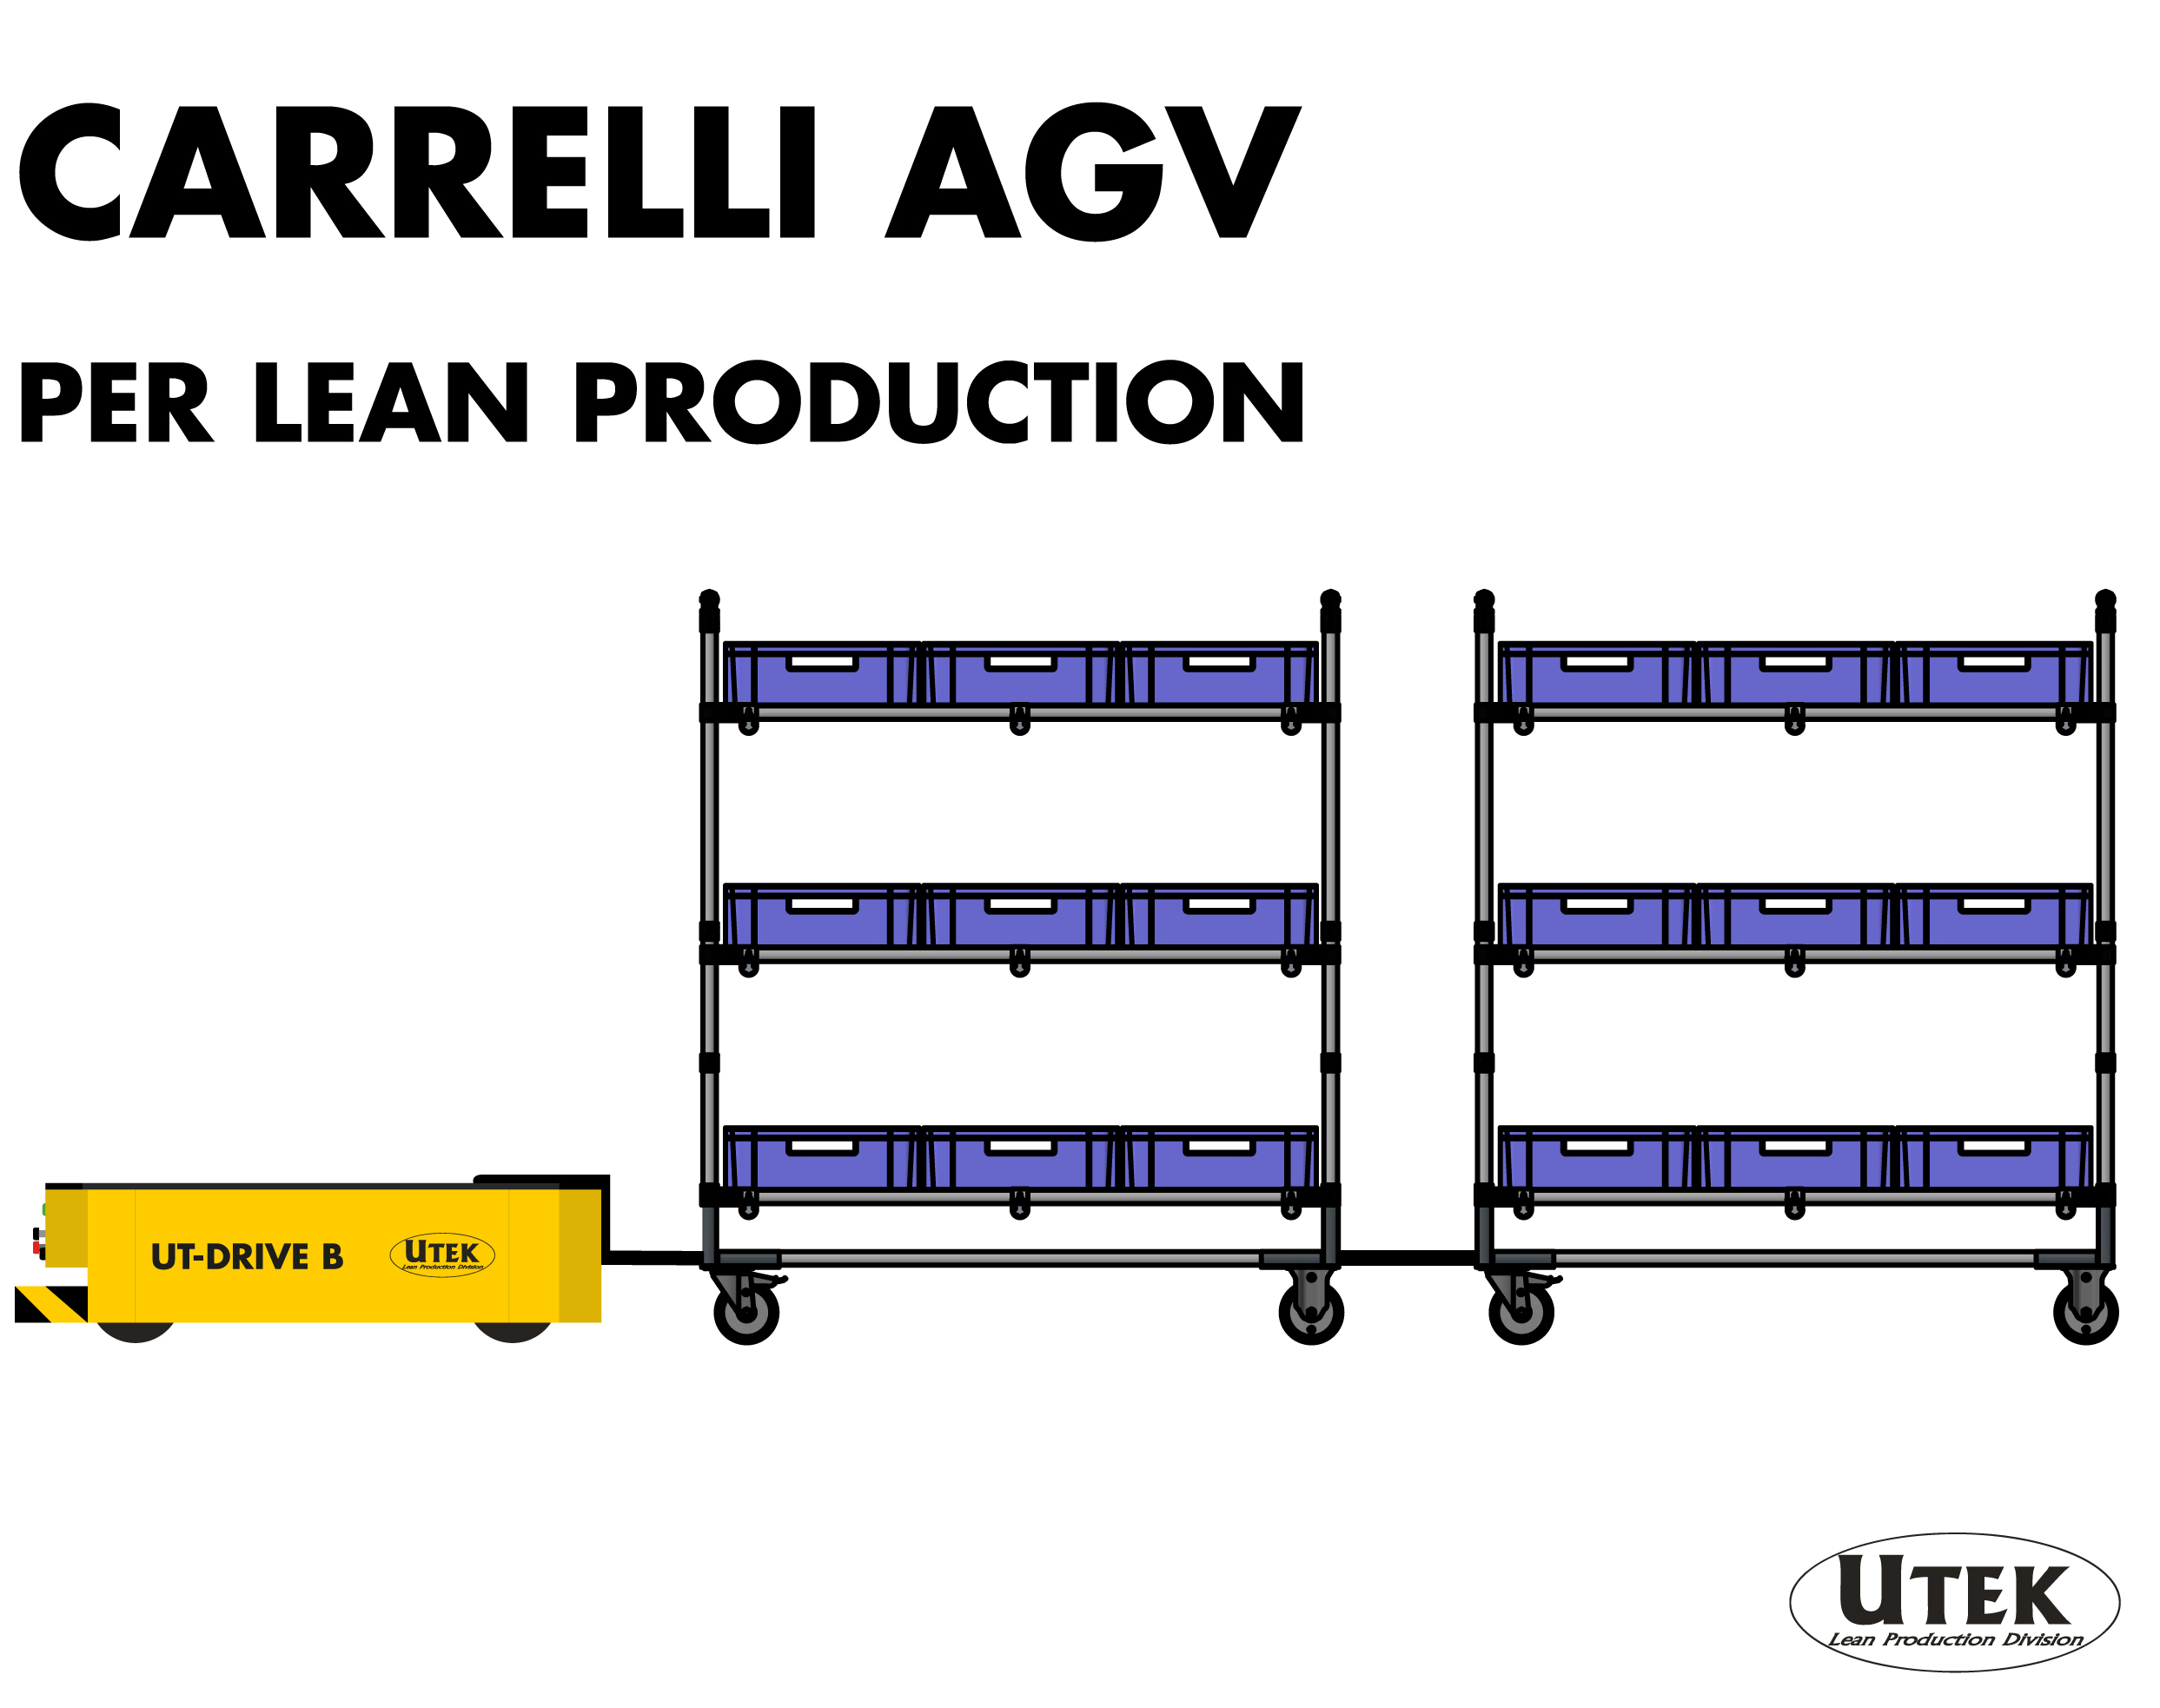 Carrelli AGV: Come usarli in ottica lean production